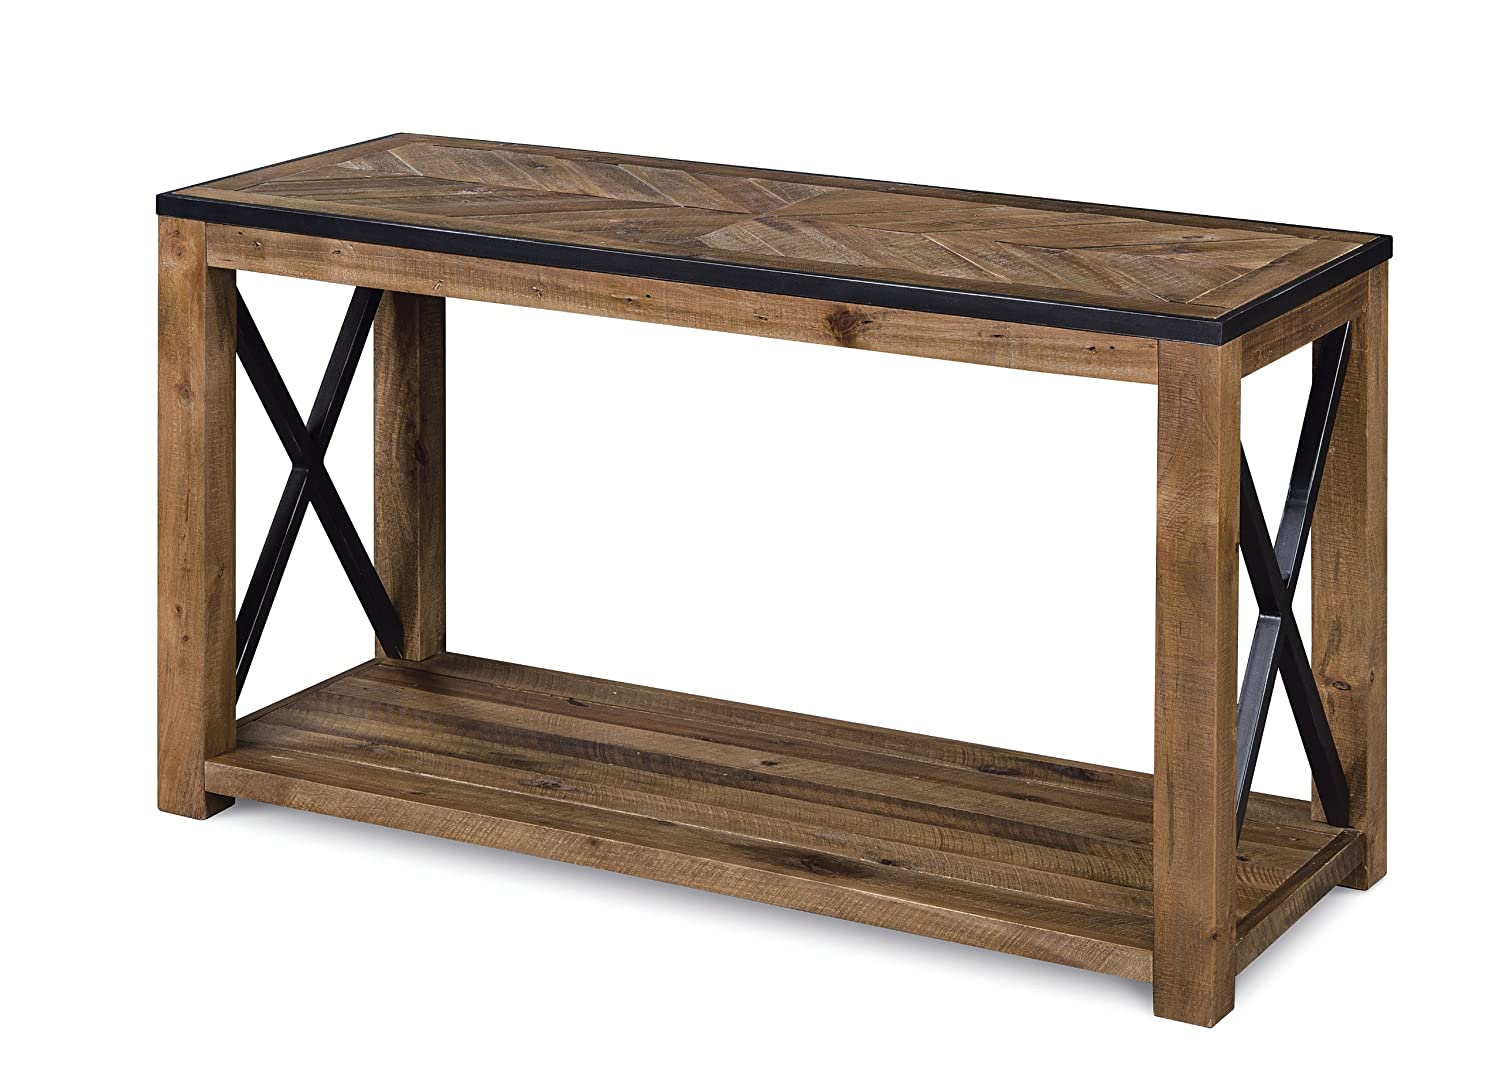 Amazon sofa table home design ideas and inspiration Home furniture on amazon